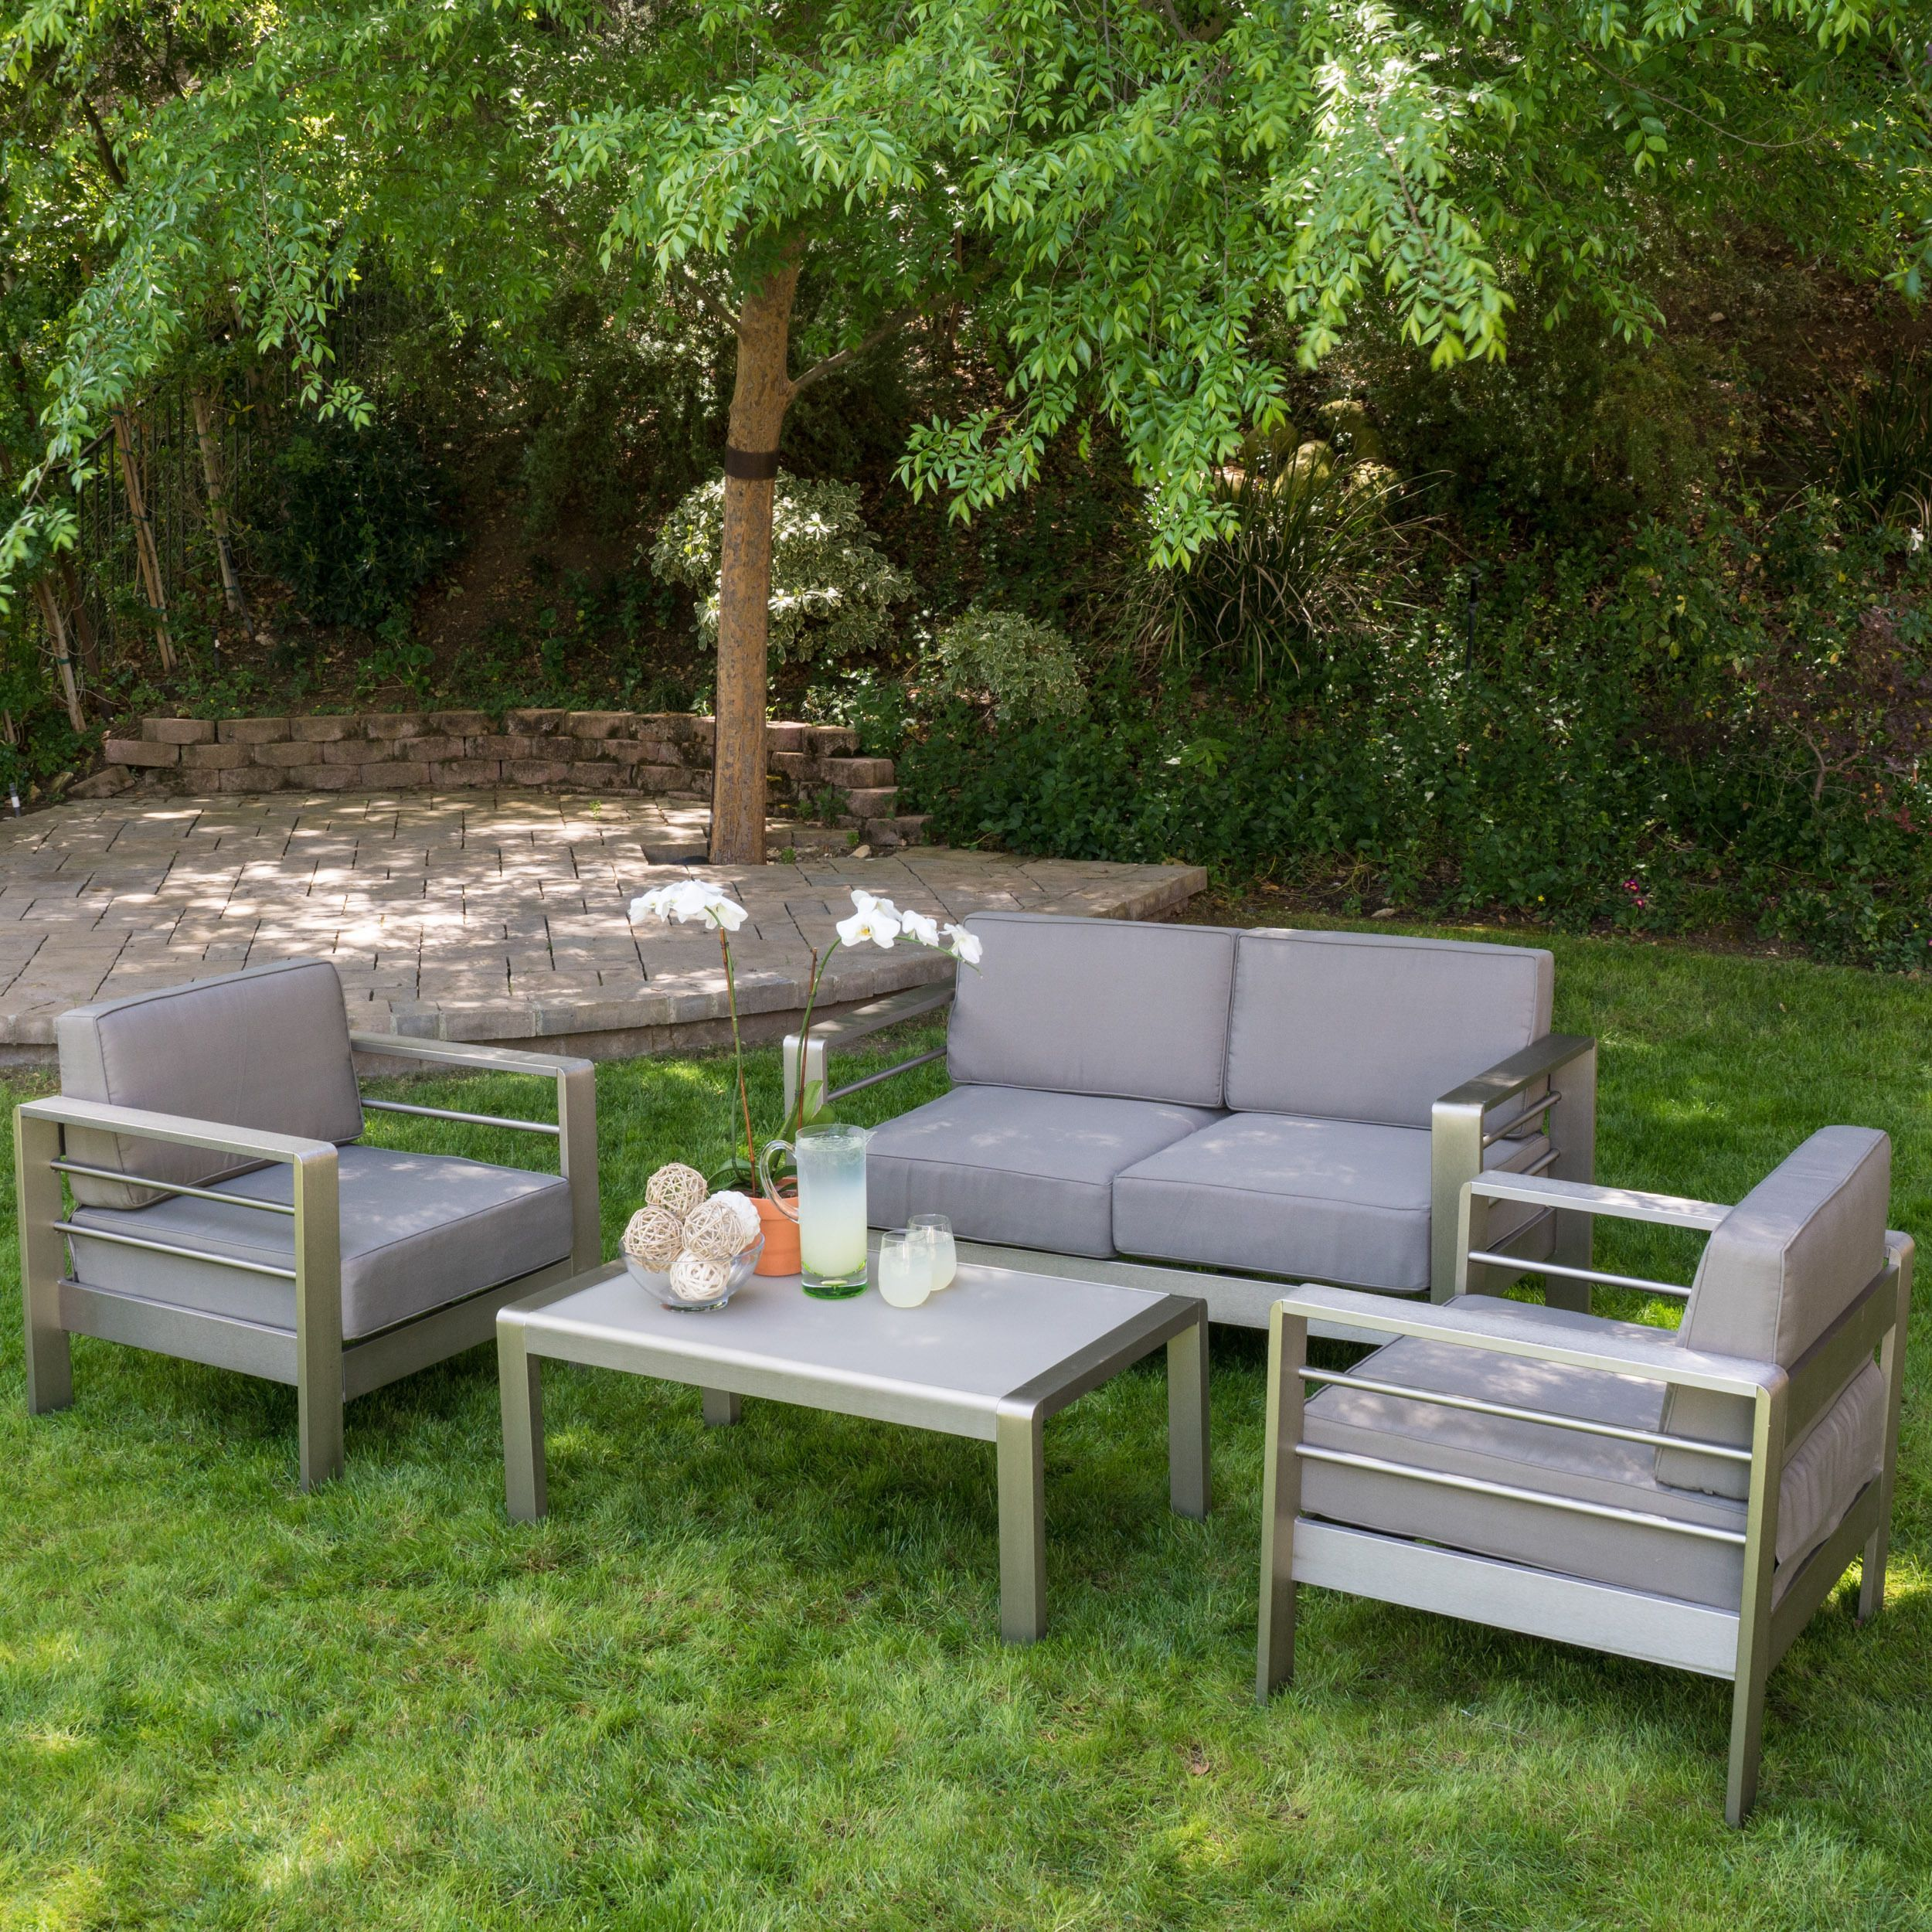 Great Christopher Knight Home Cape Coral Outdoor Aluminum Loveseat Set With  Cushions   Overstock Shopping   Big Discounts On Christopher Knight Home  Sofas, Chairs ...